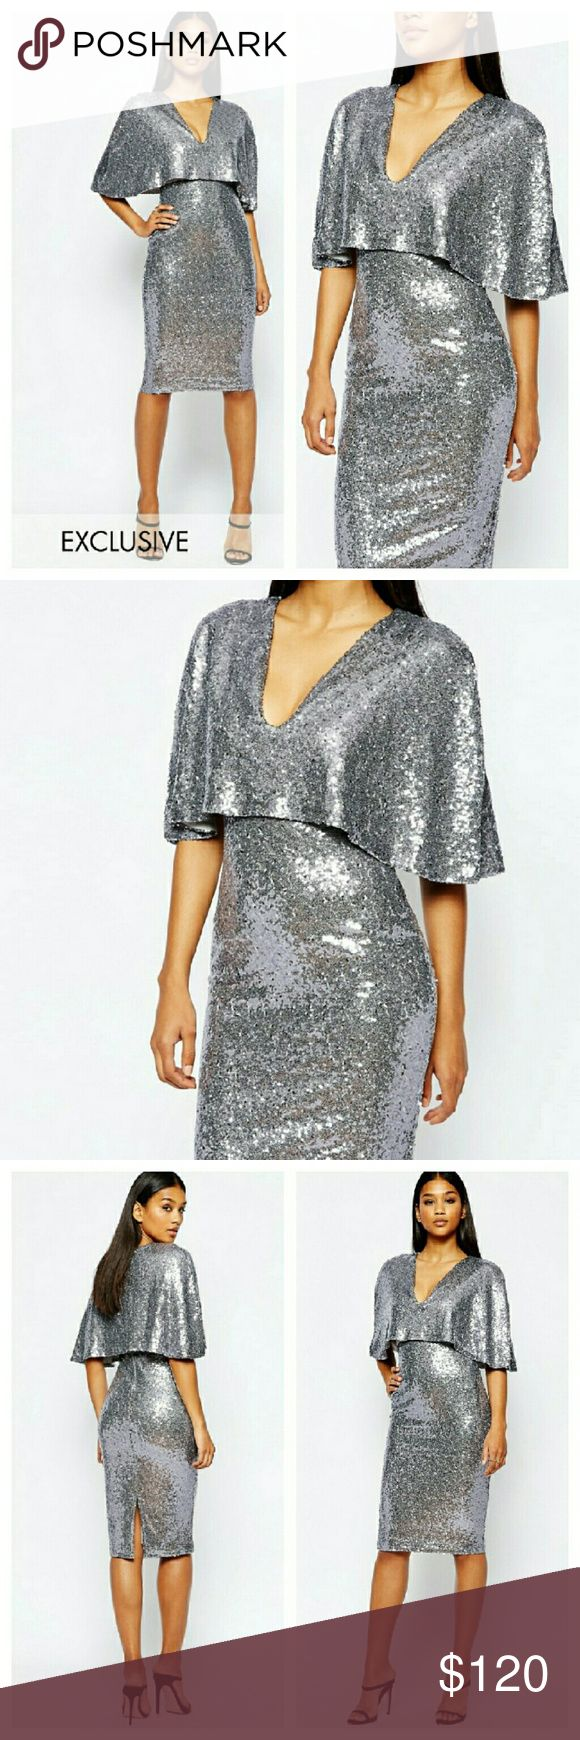 Asos Cape Sequin Midi Dress NWTs. UK size 8/US size 4. Purchased for myself off Asos but never wore. Brand new in packaging. Completely sold out. 100% poly with all over sequins. Zips in back. ASOS Dresses Midi